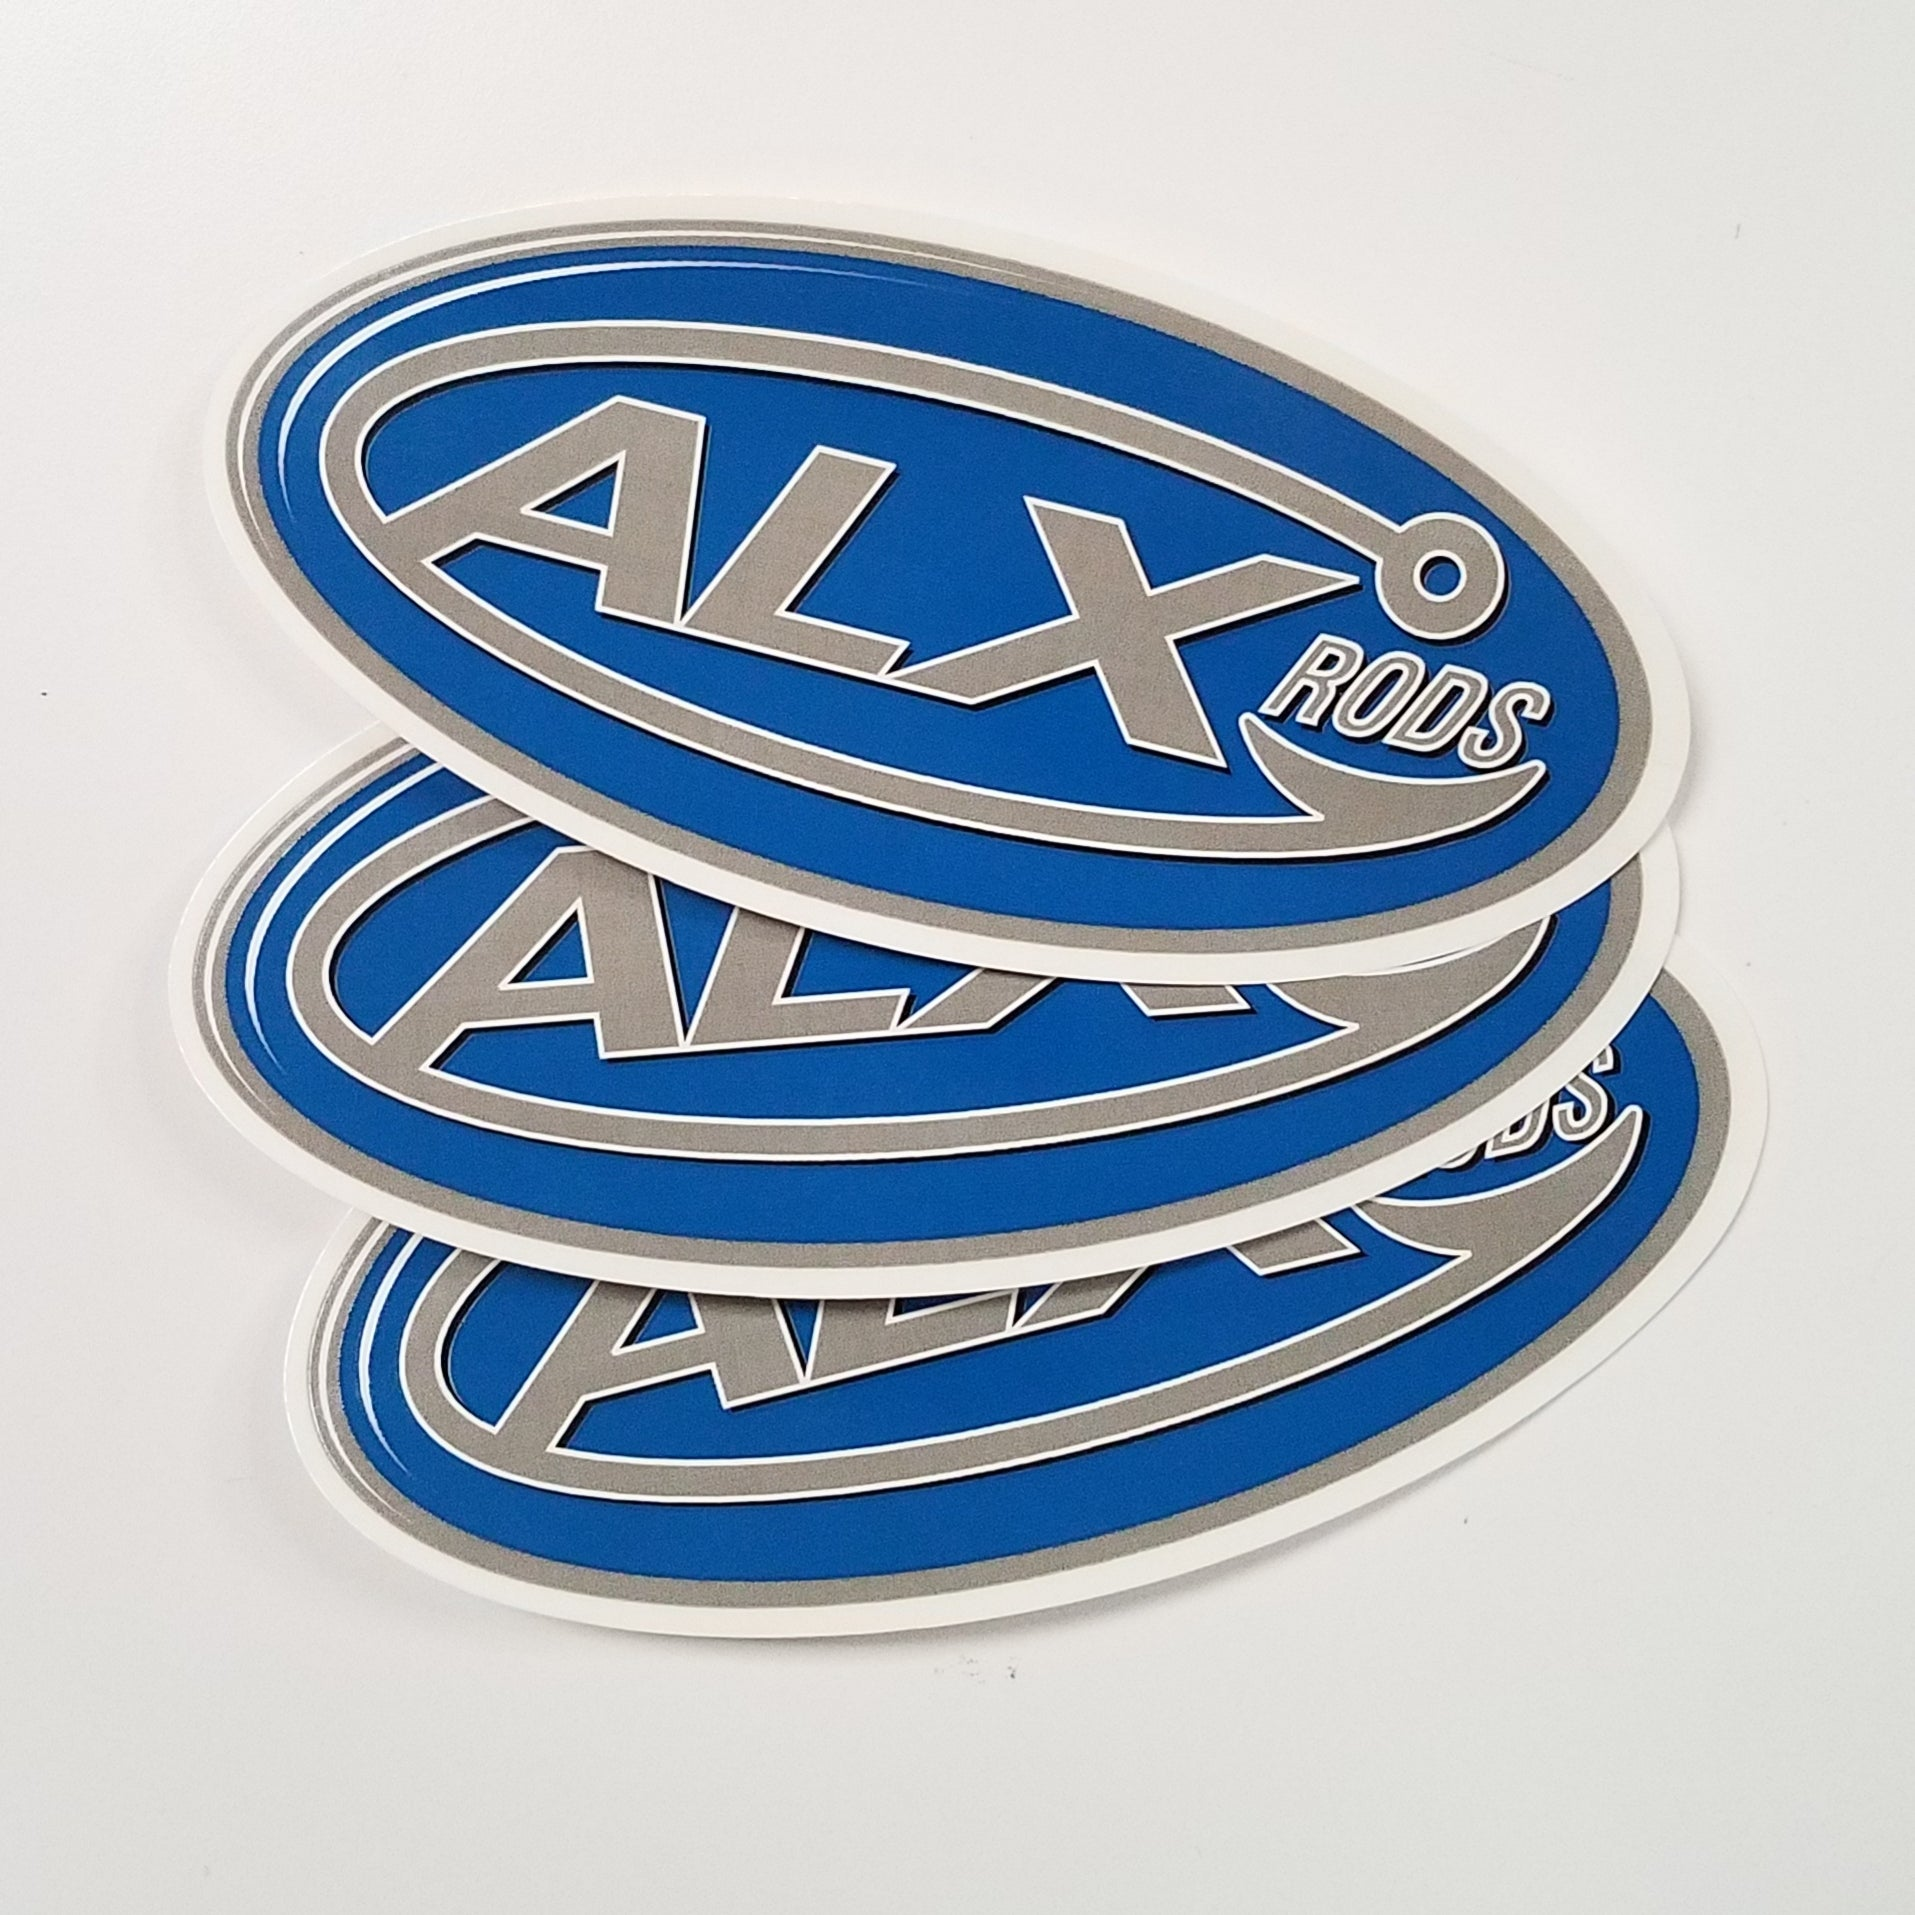 ALX Rods Decal 3 Pack